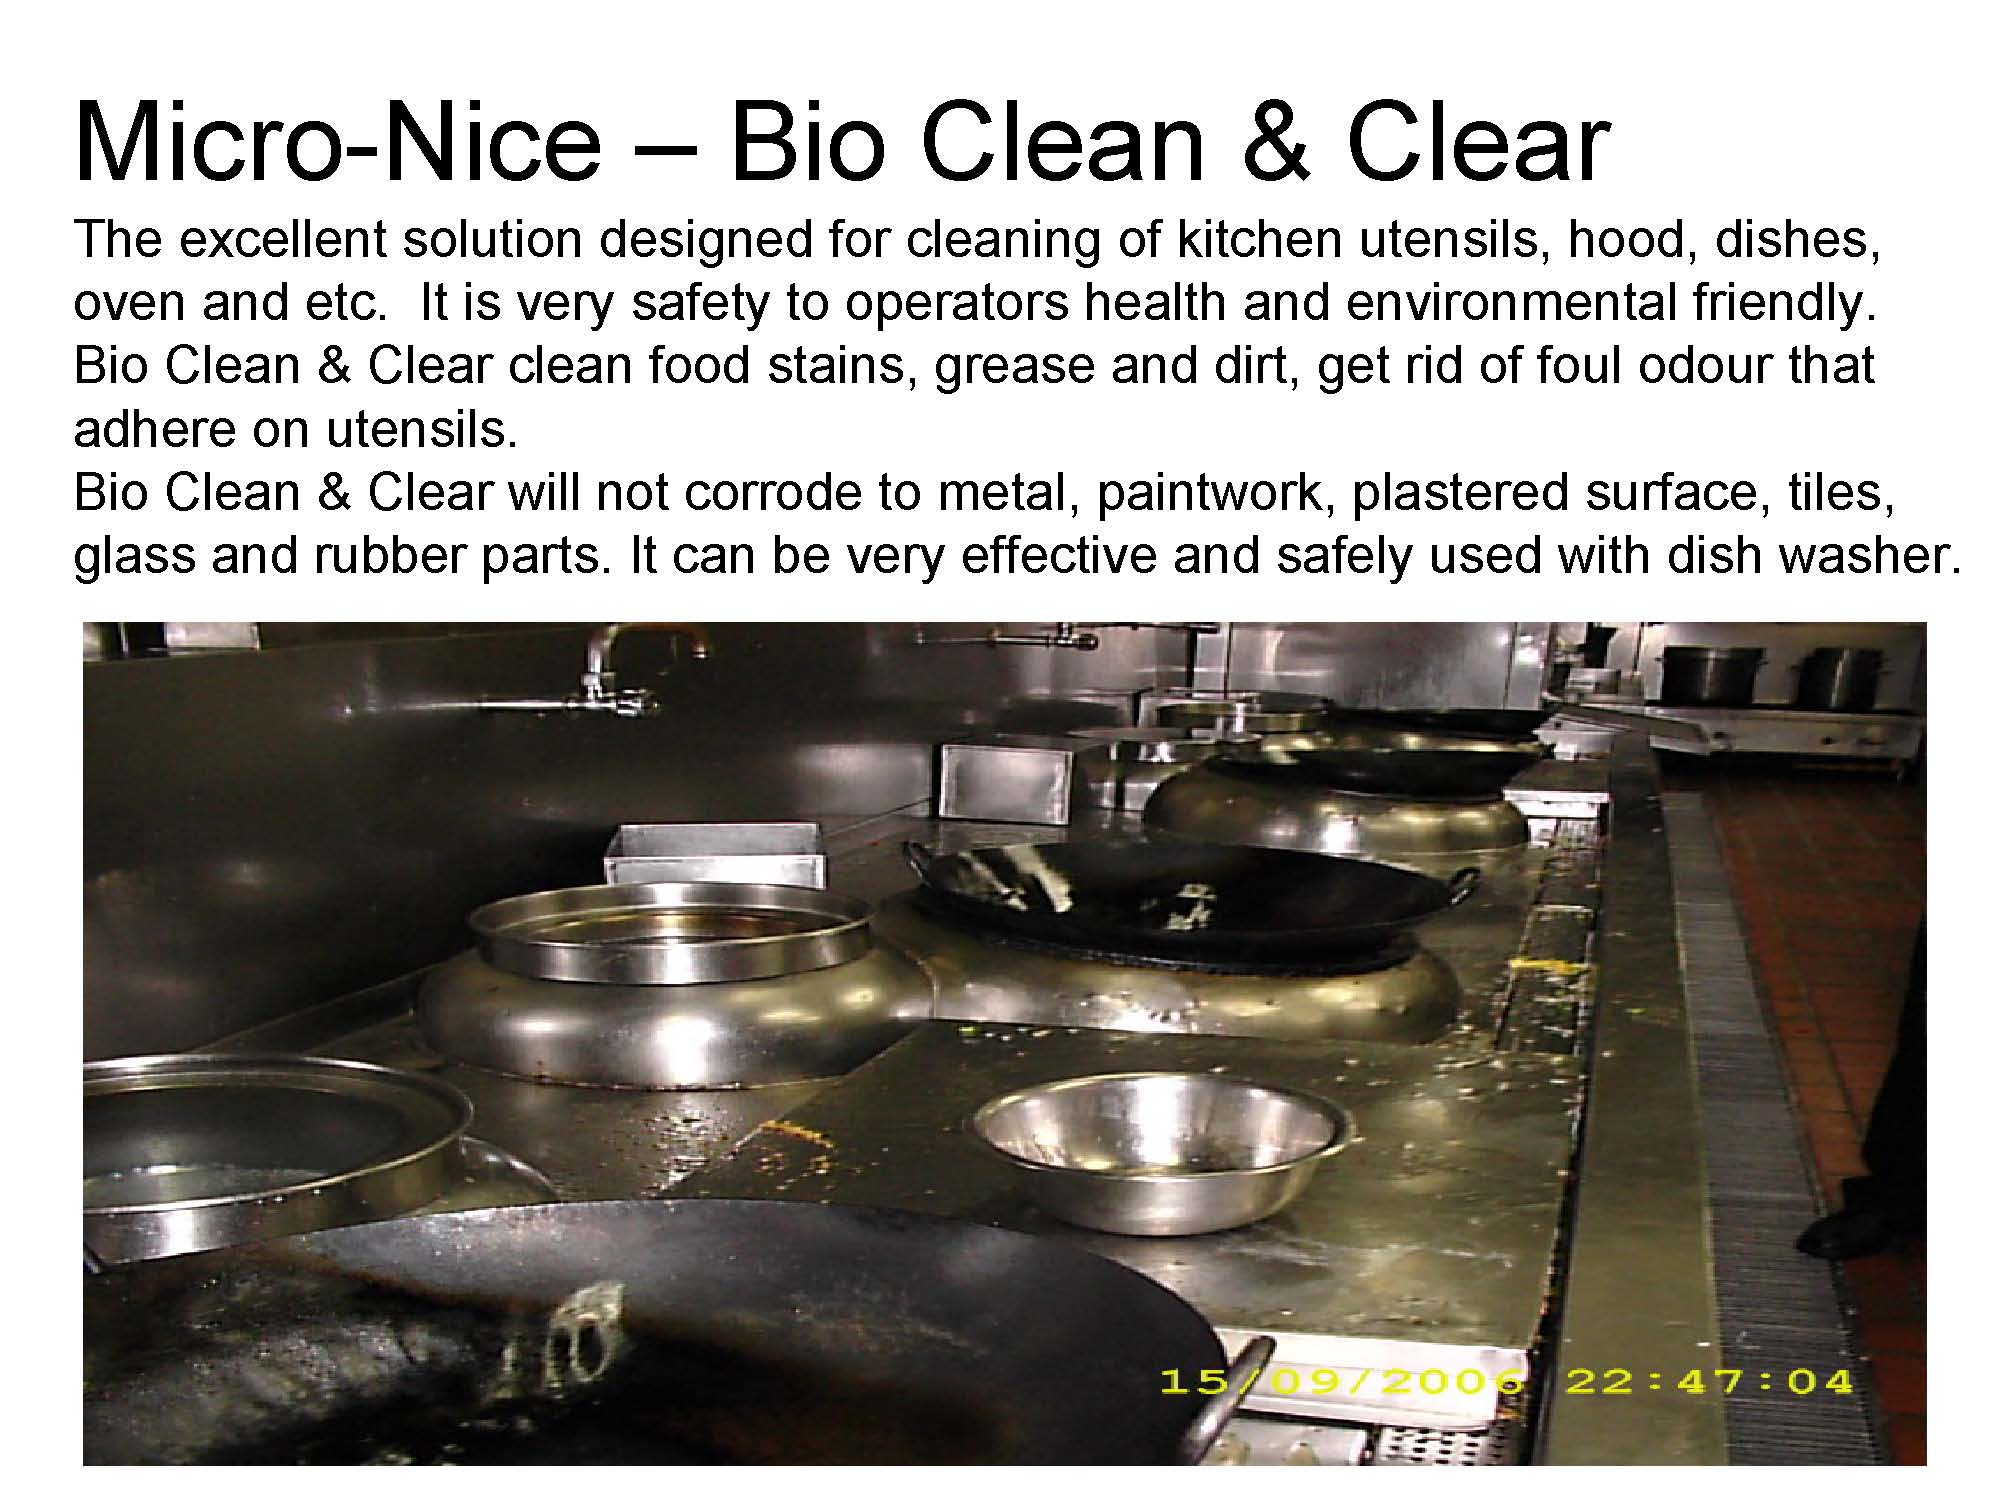 !00% Biodegradable cleansing agent for all kitchen wares and floors